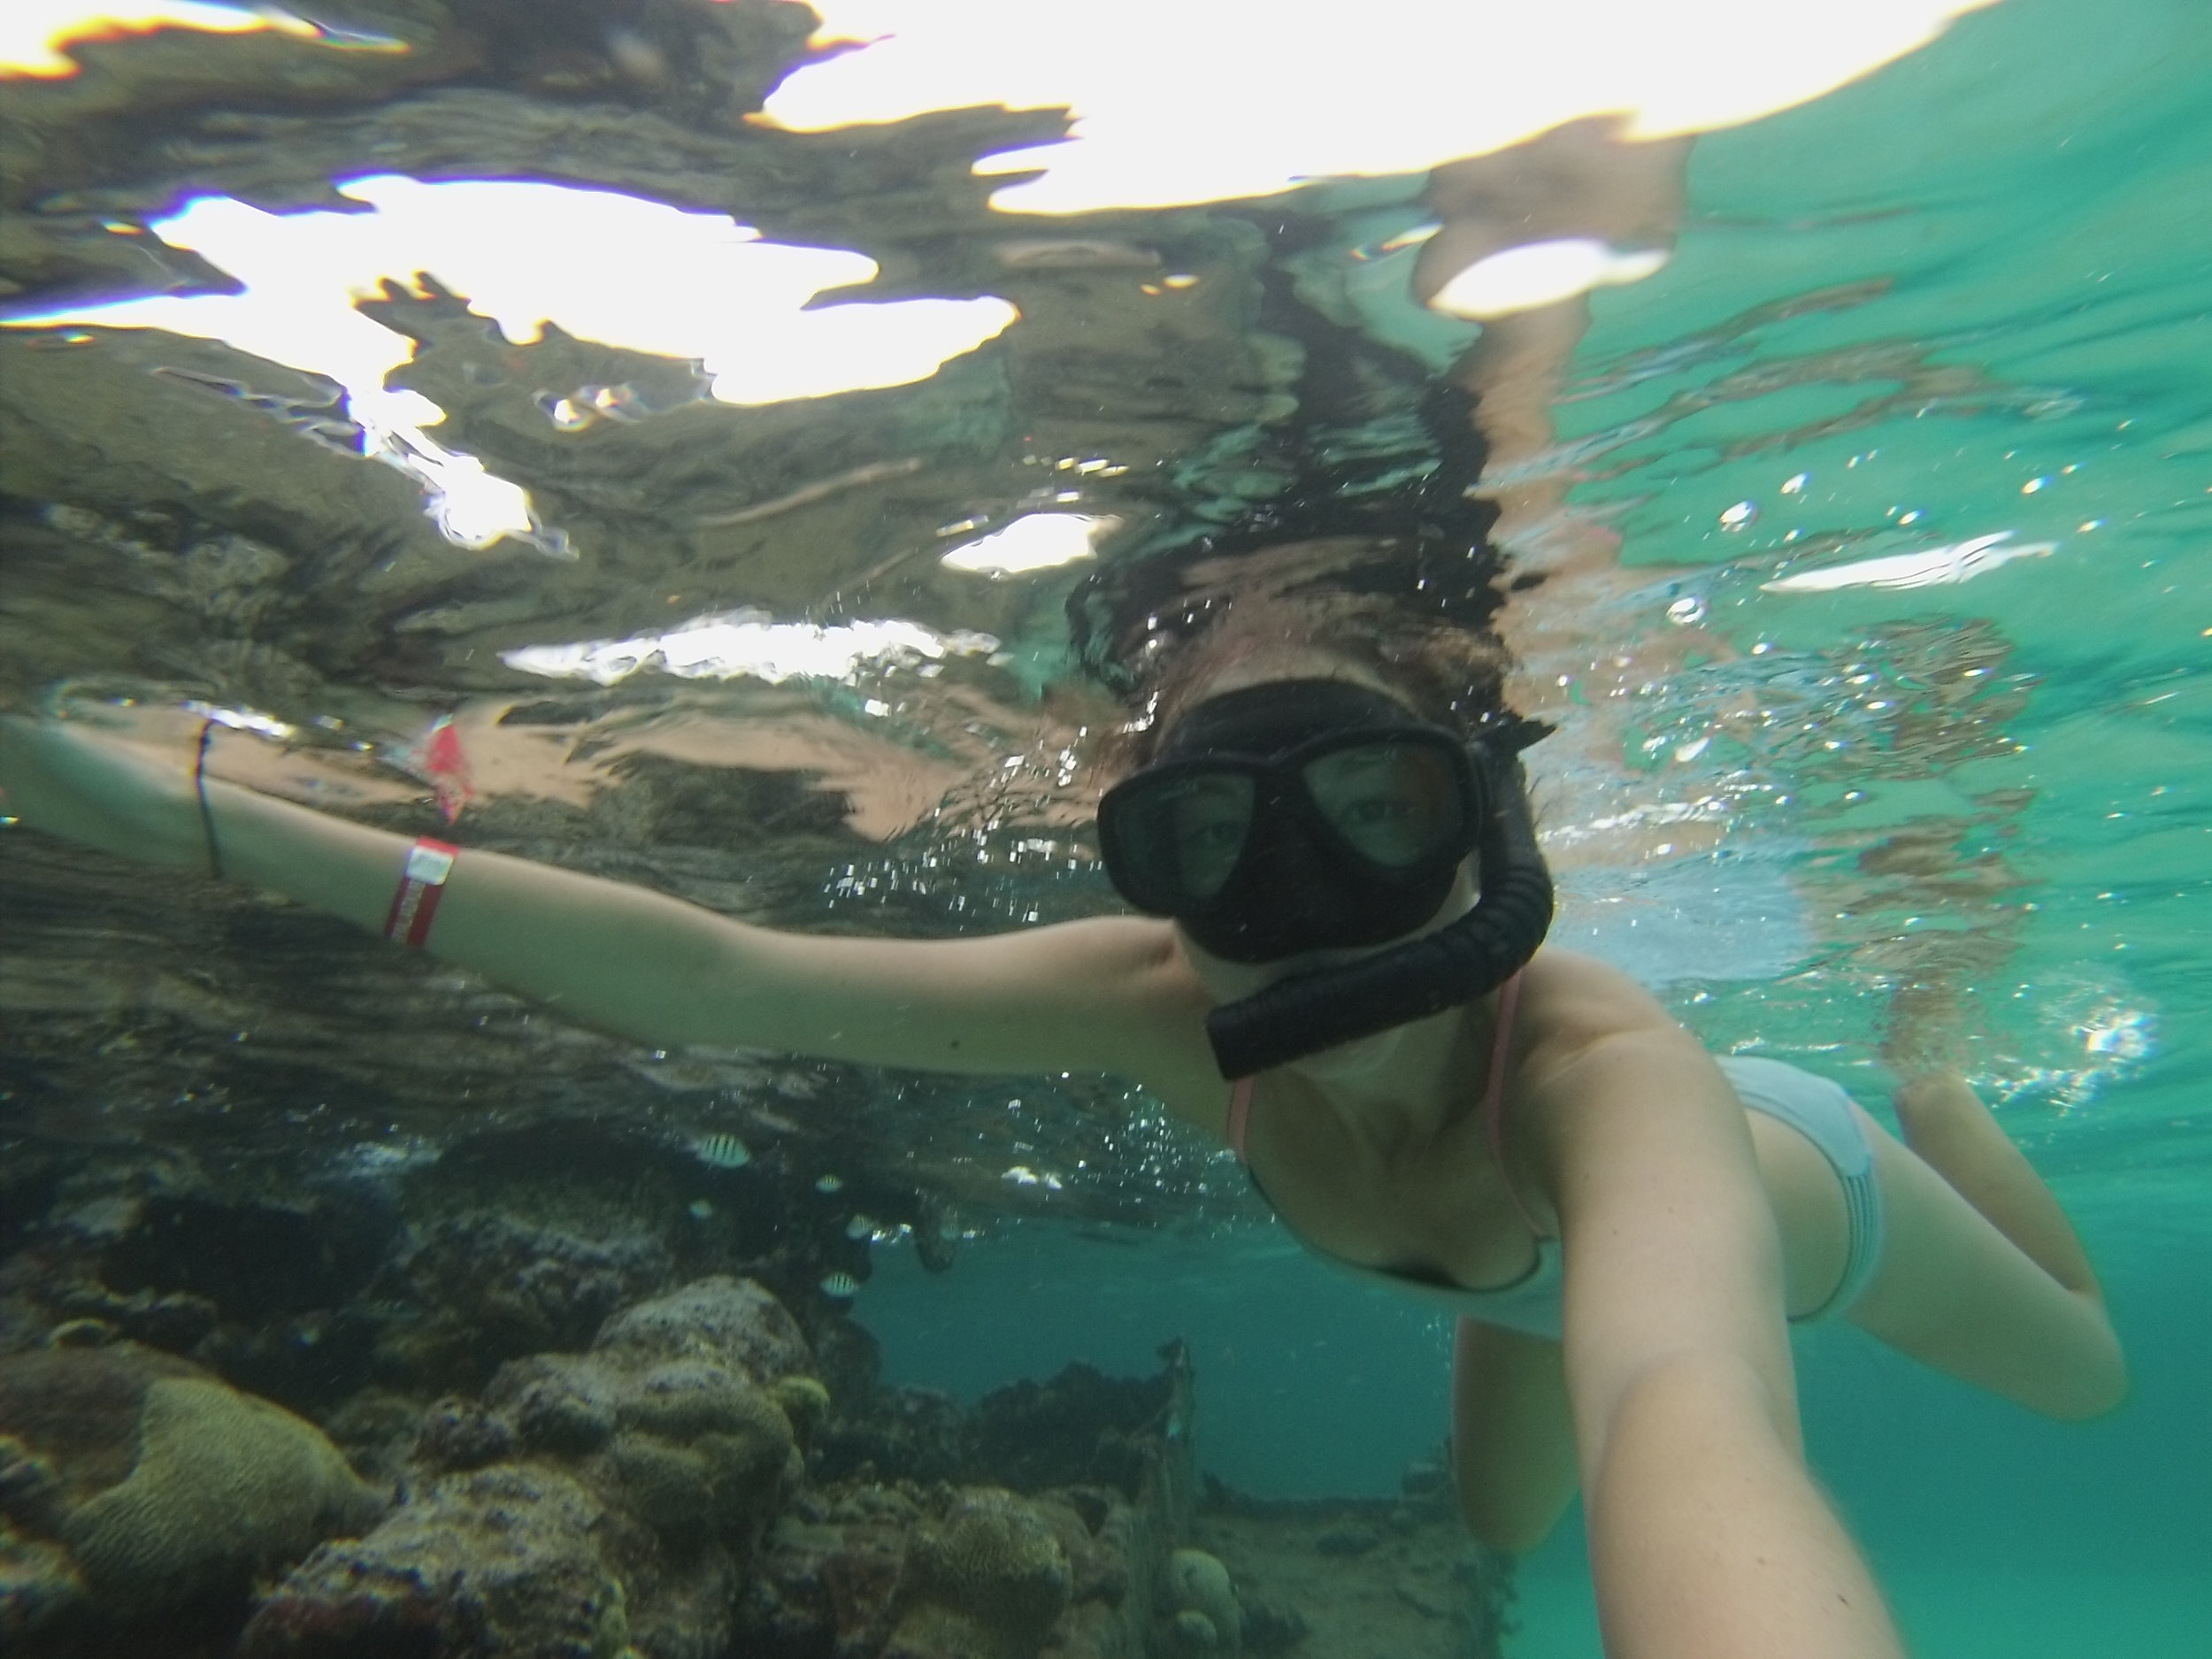 Snorkeling at Shipwreck Island.